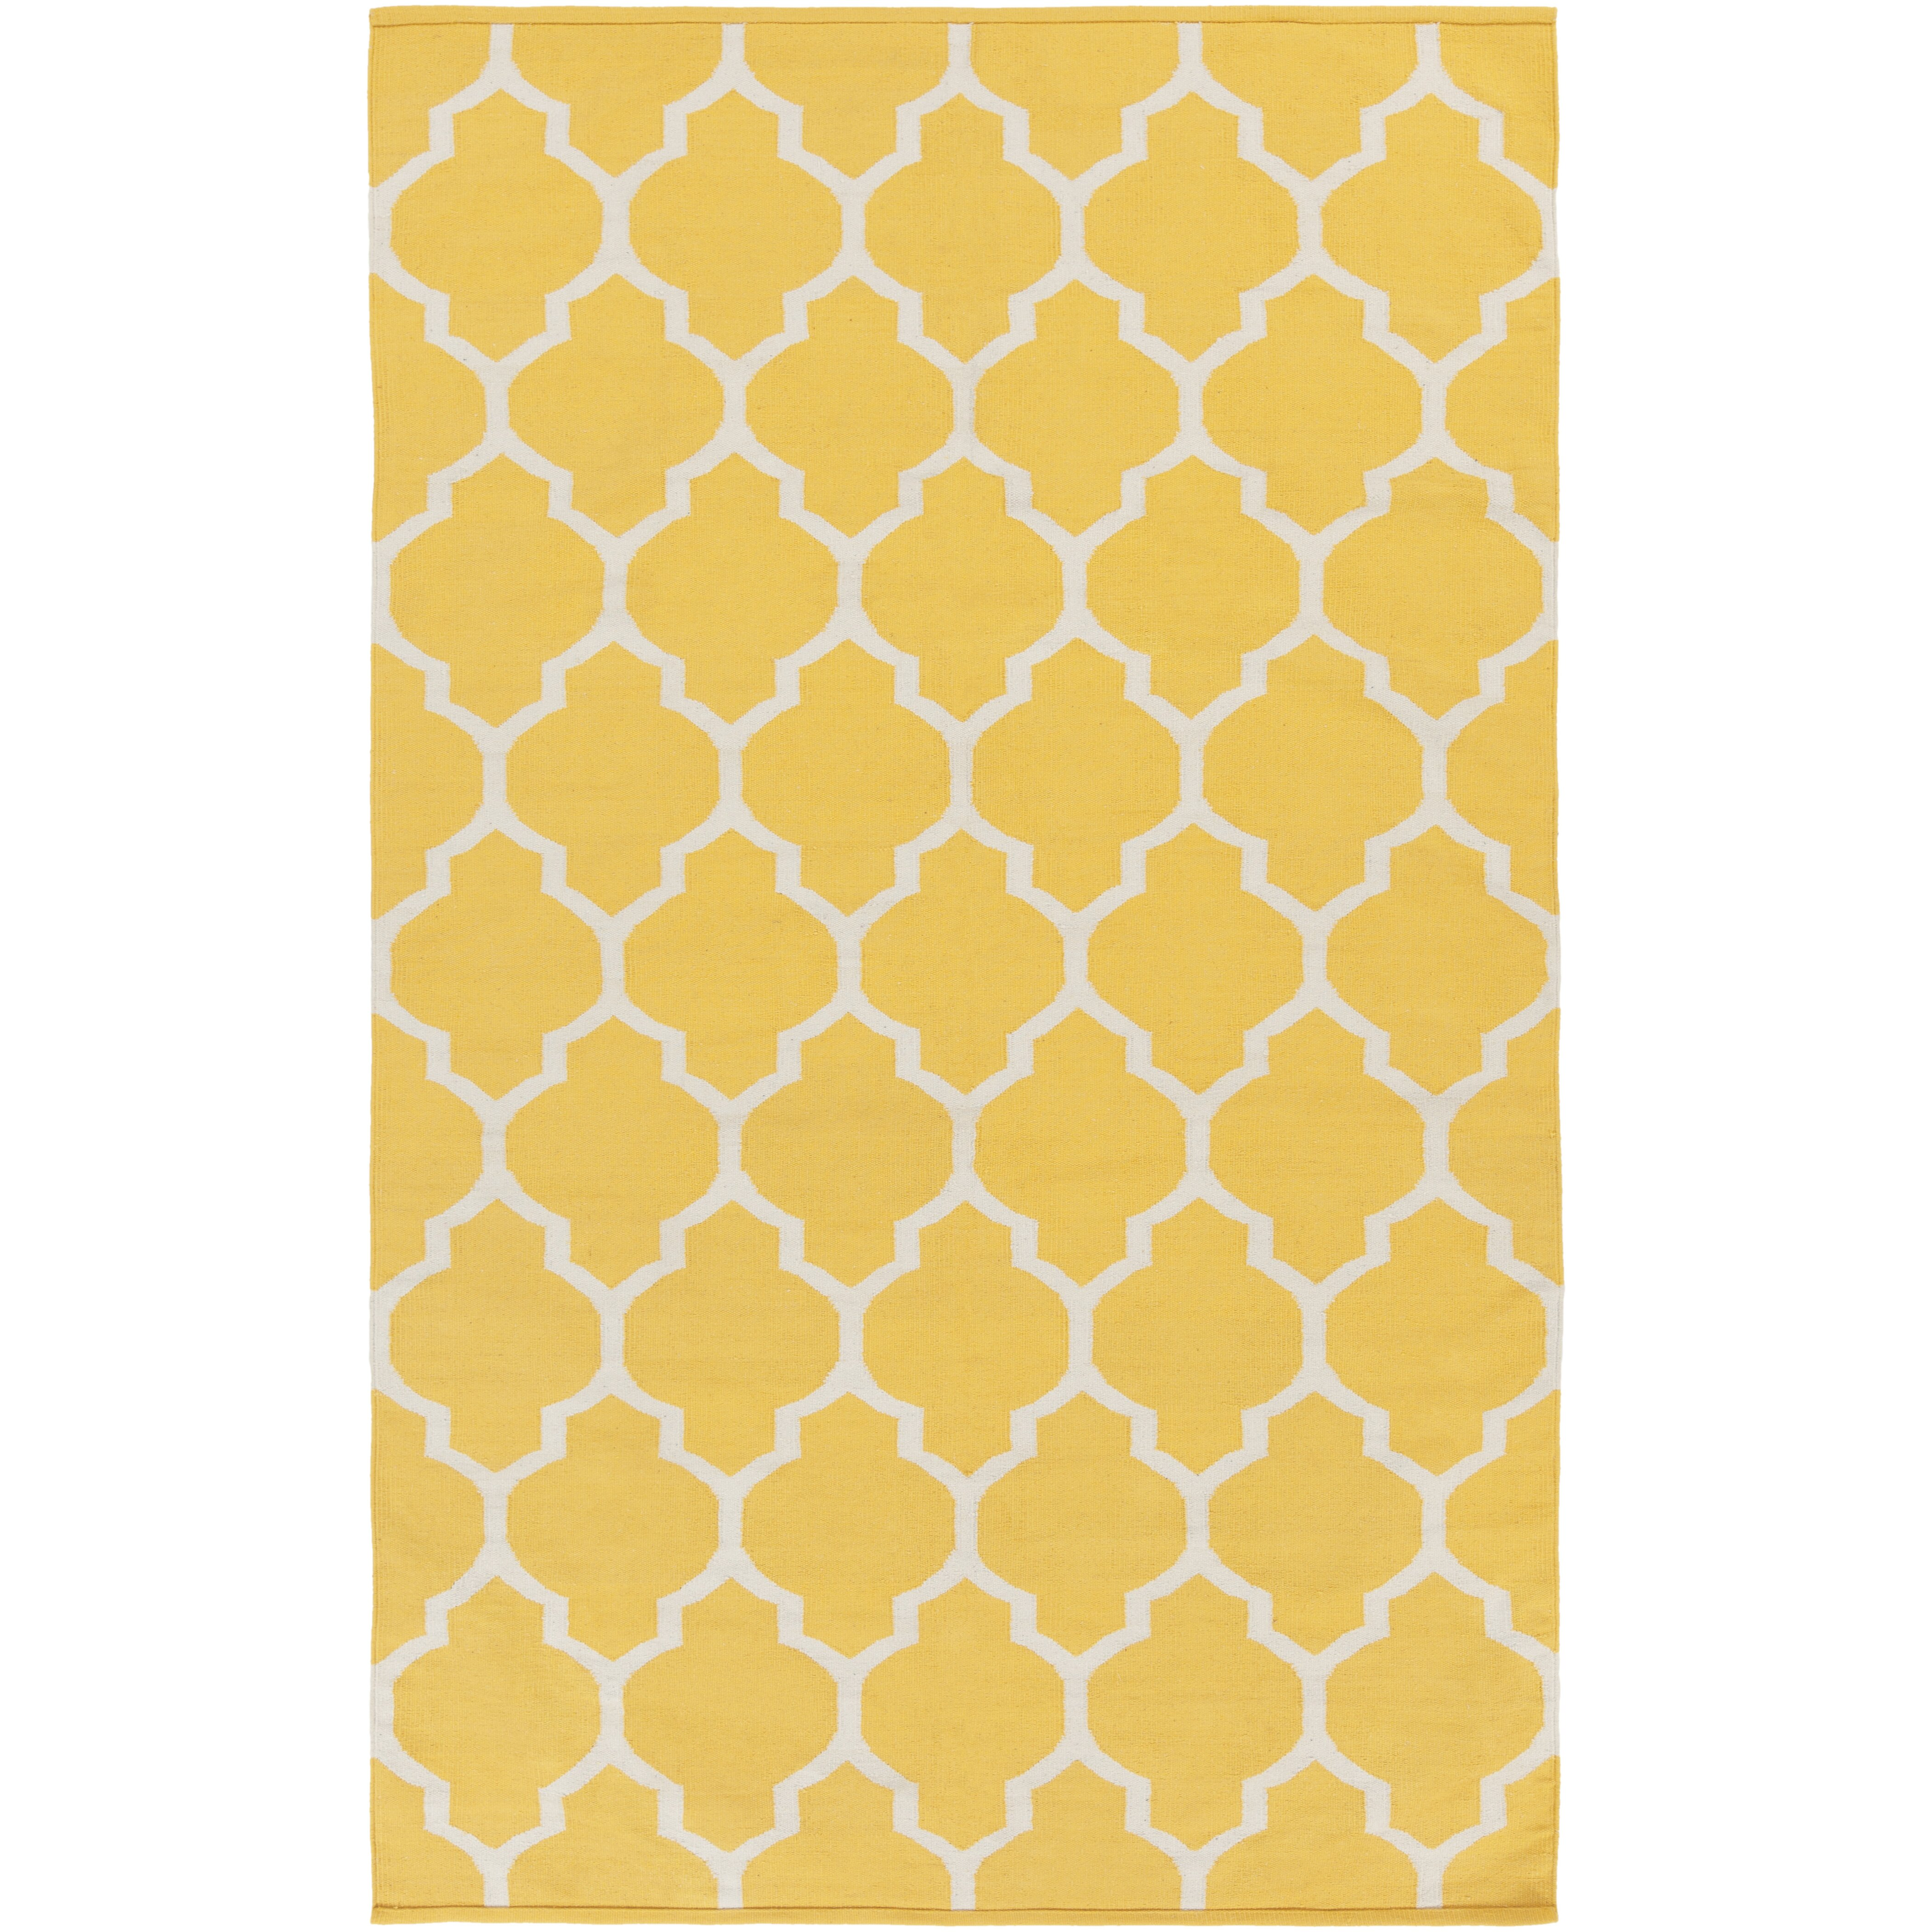 Artistic Weavers Vogue Yellow Geometric Claire Area Rug